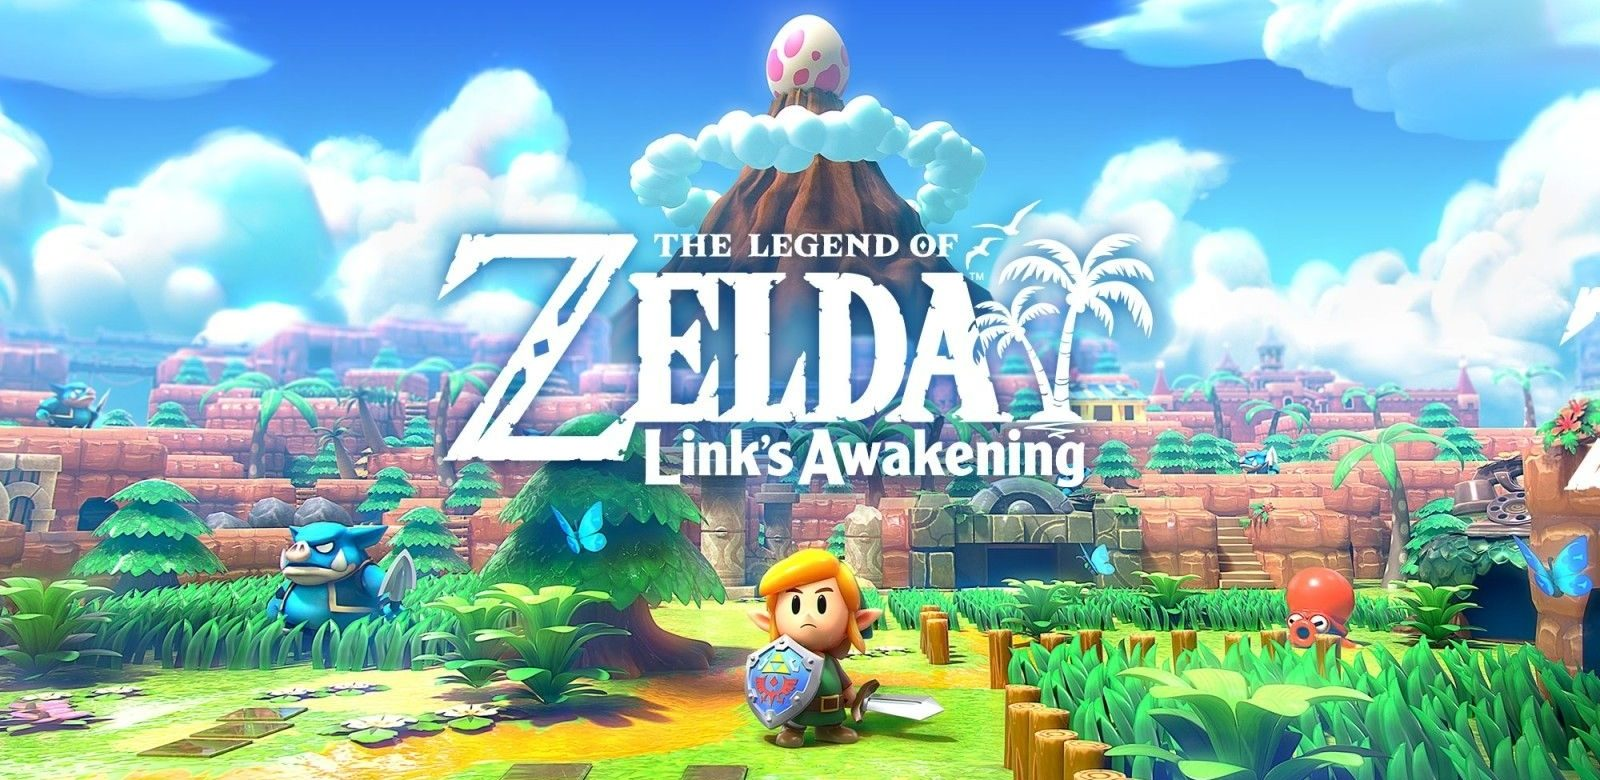 Game completion 2019 #34 – The Legend of Zelda: Link's Awakening